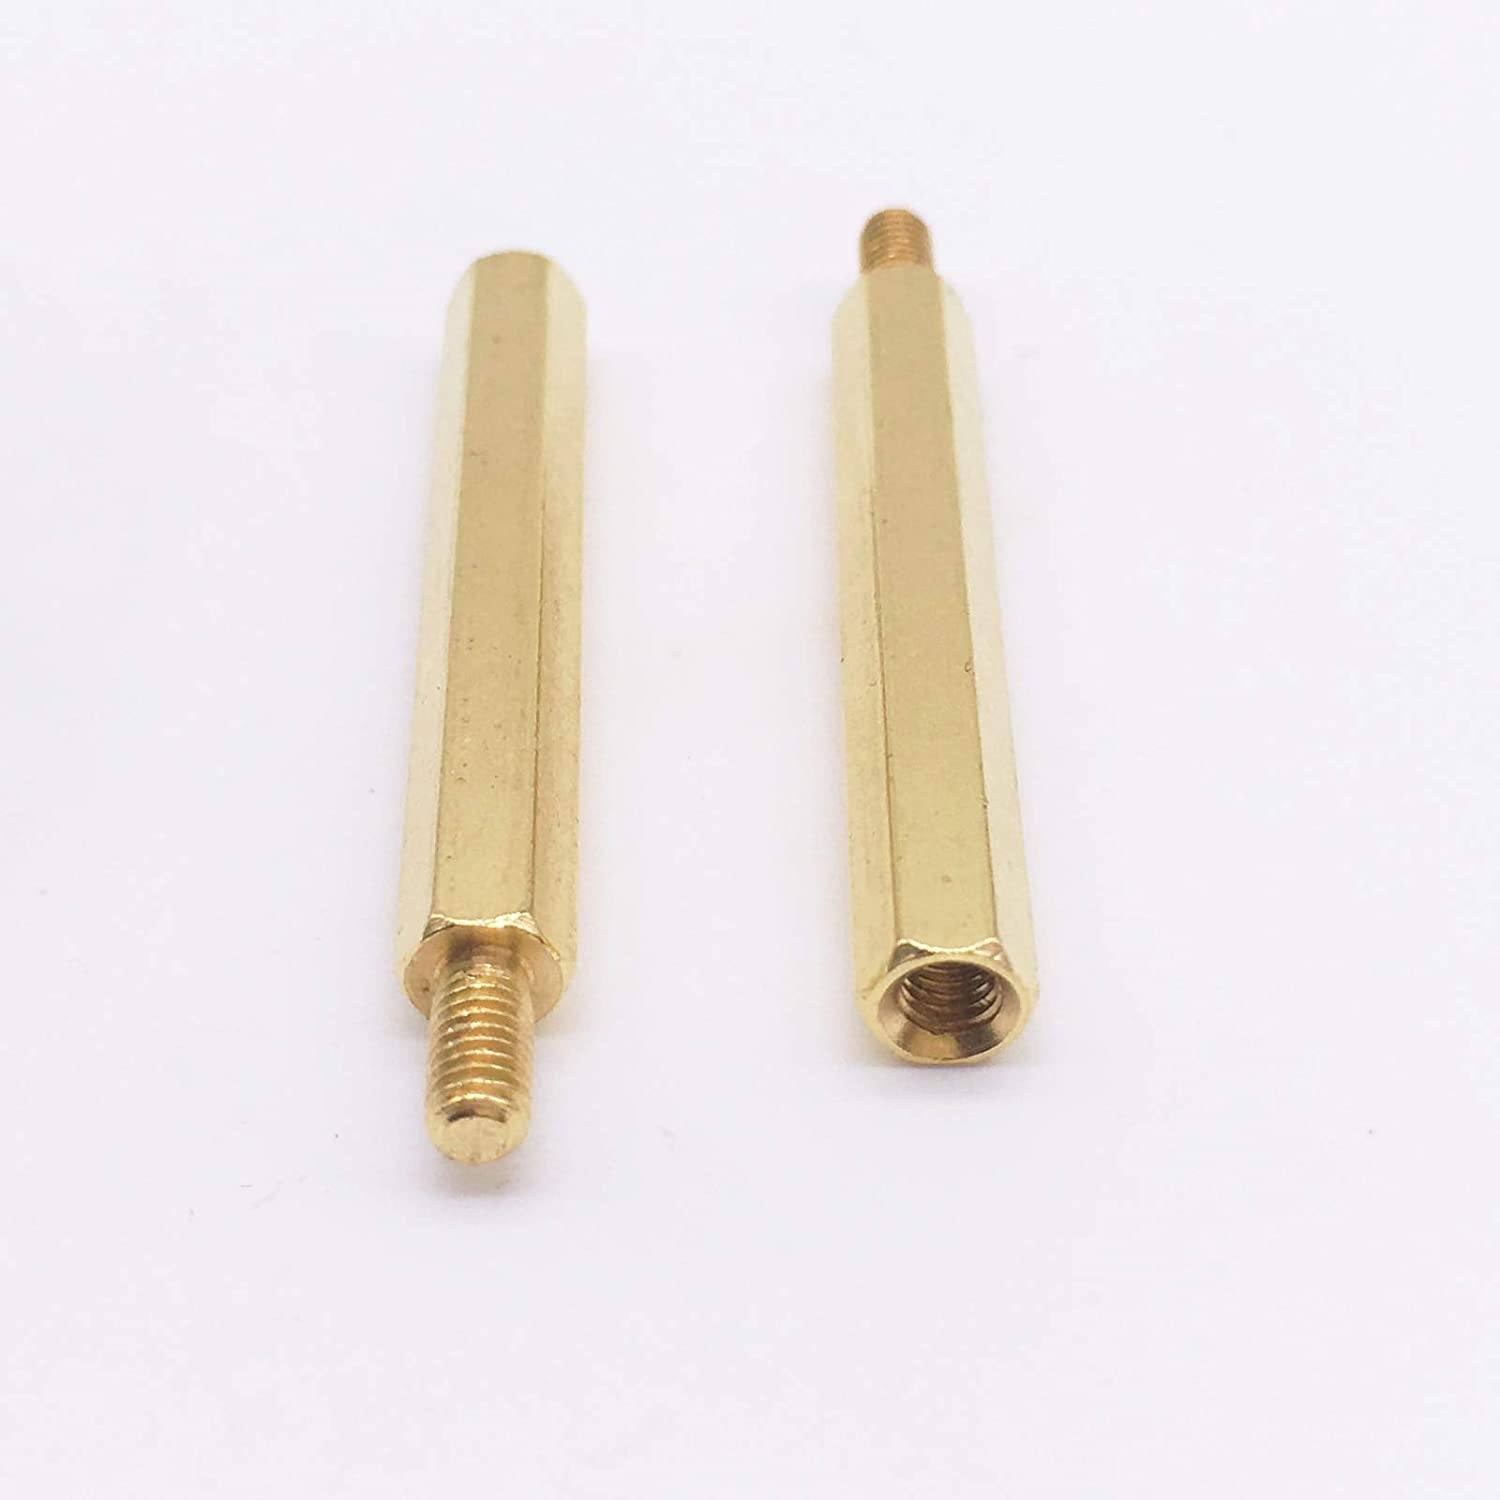 M3x38+6 Spacer Screws M3 Max Long Beach Mall 51% OFF Hex Standoff Brass to Nuts Female Male